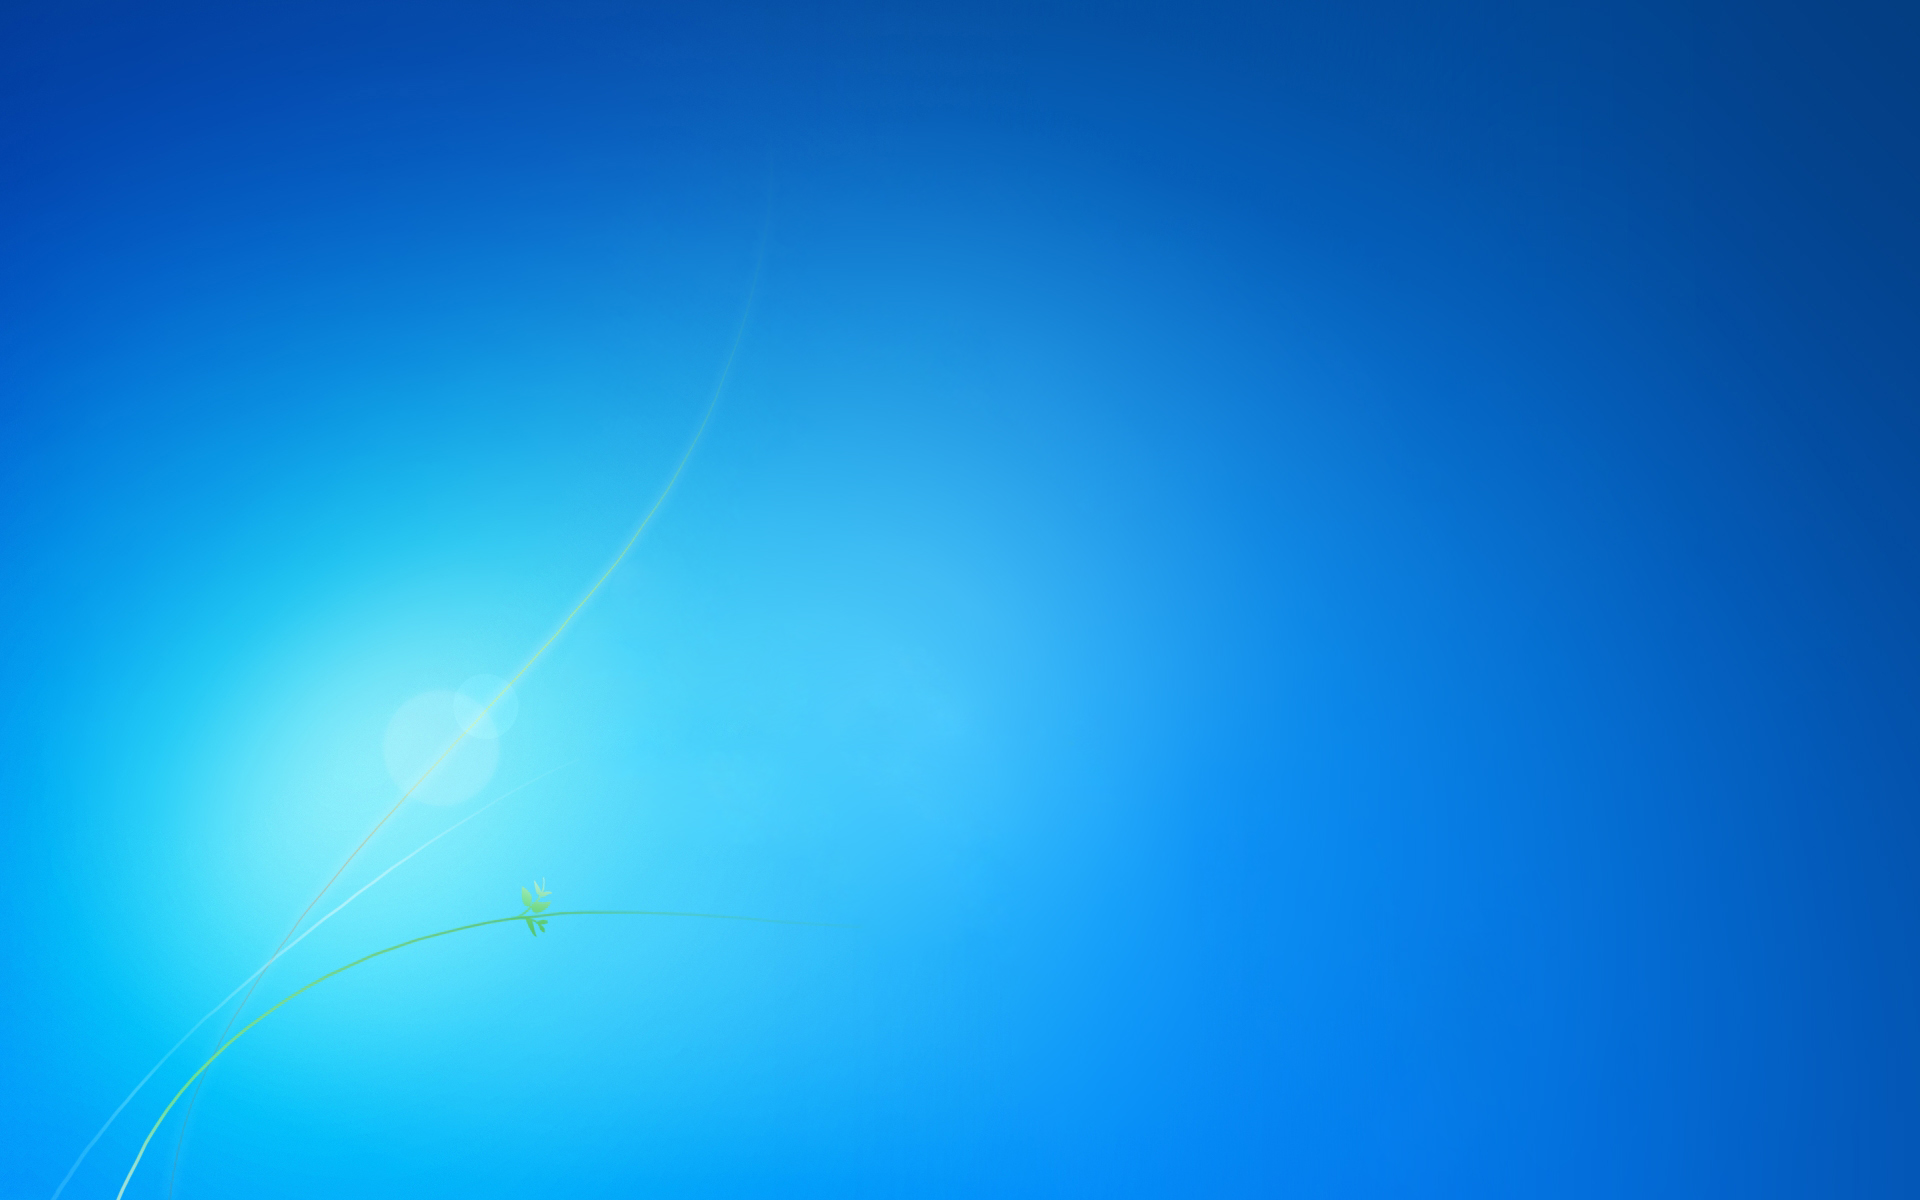 Windows 7 Blue Wallpapers HD Wallpapers 1920x1200